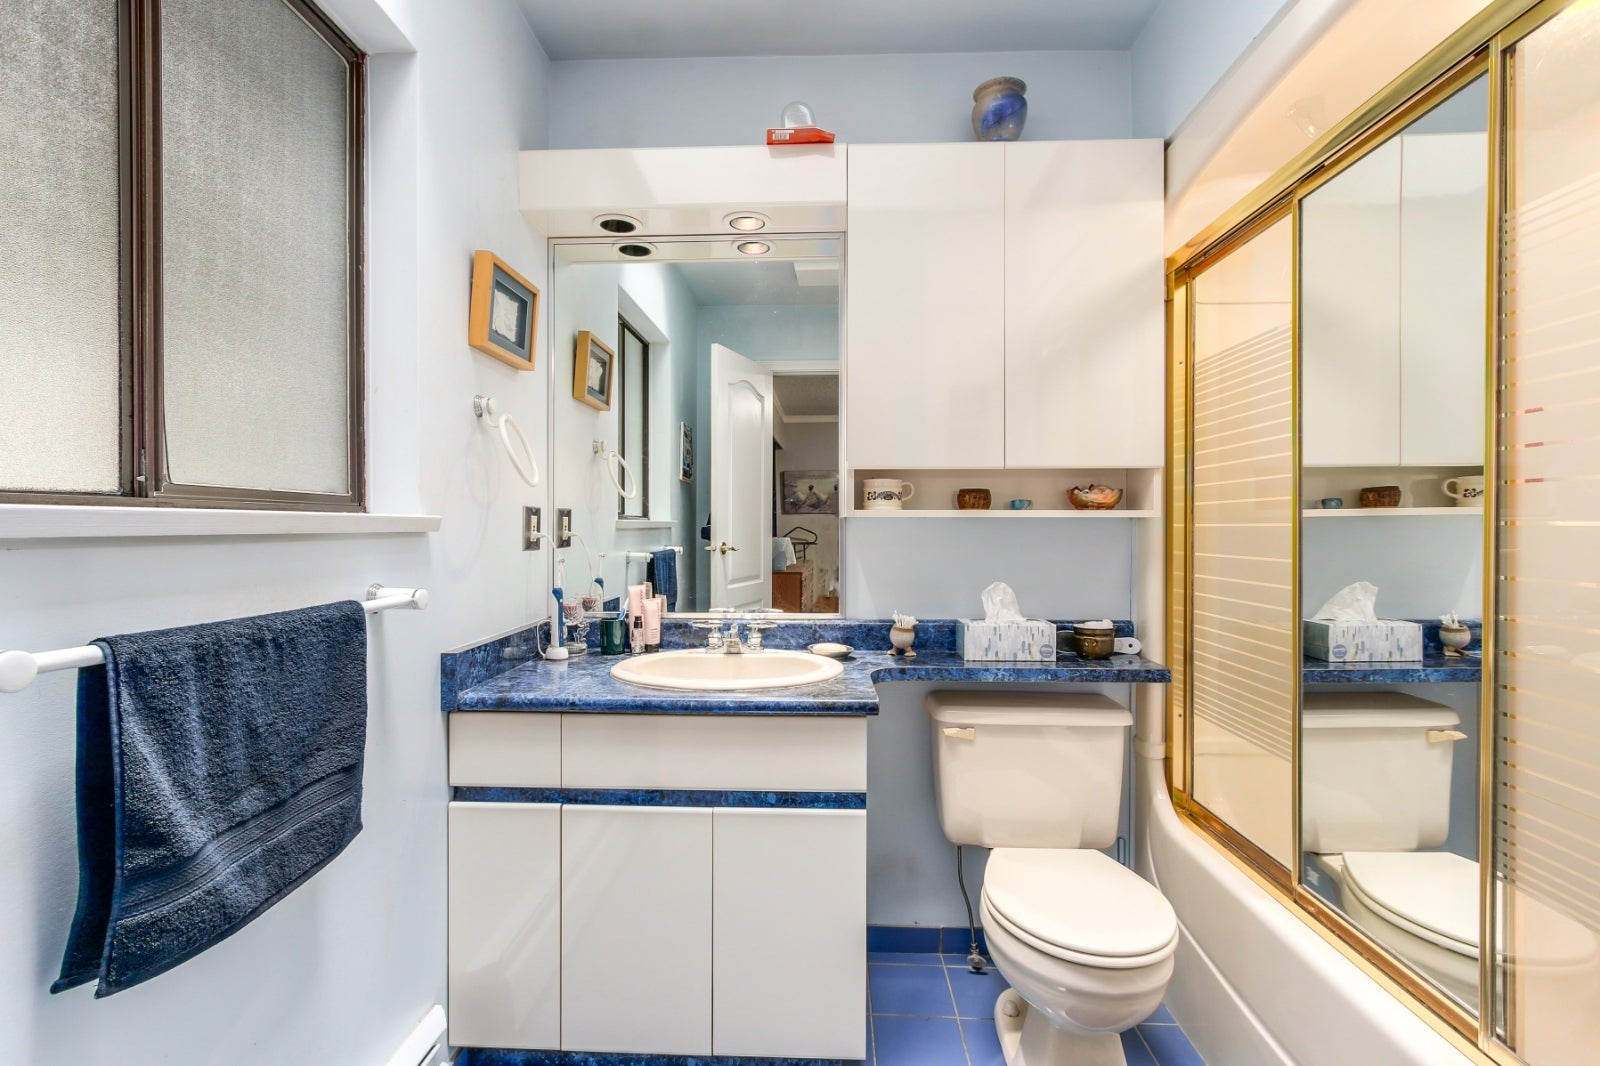 4678 CARSON STREET - South Slope House/Single Family for sale, 5 Bedrooms (R2162406) #27